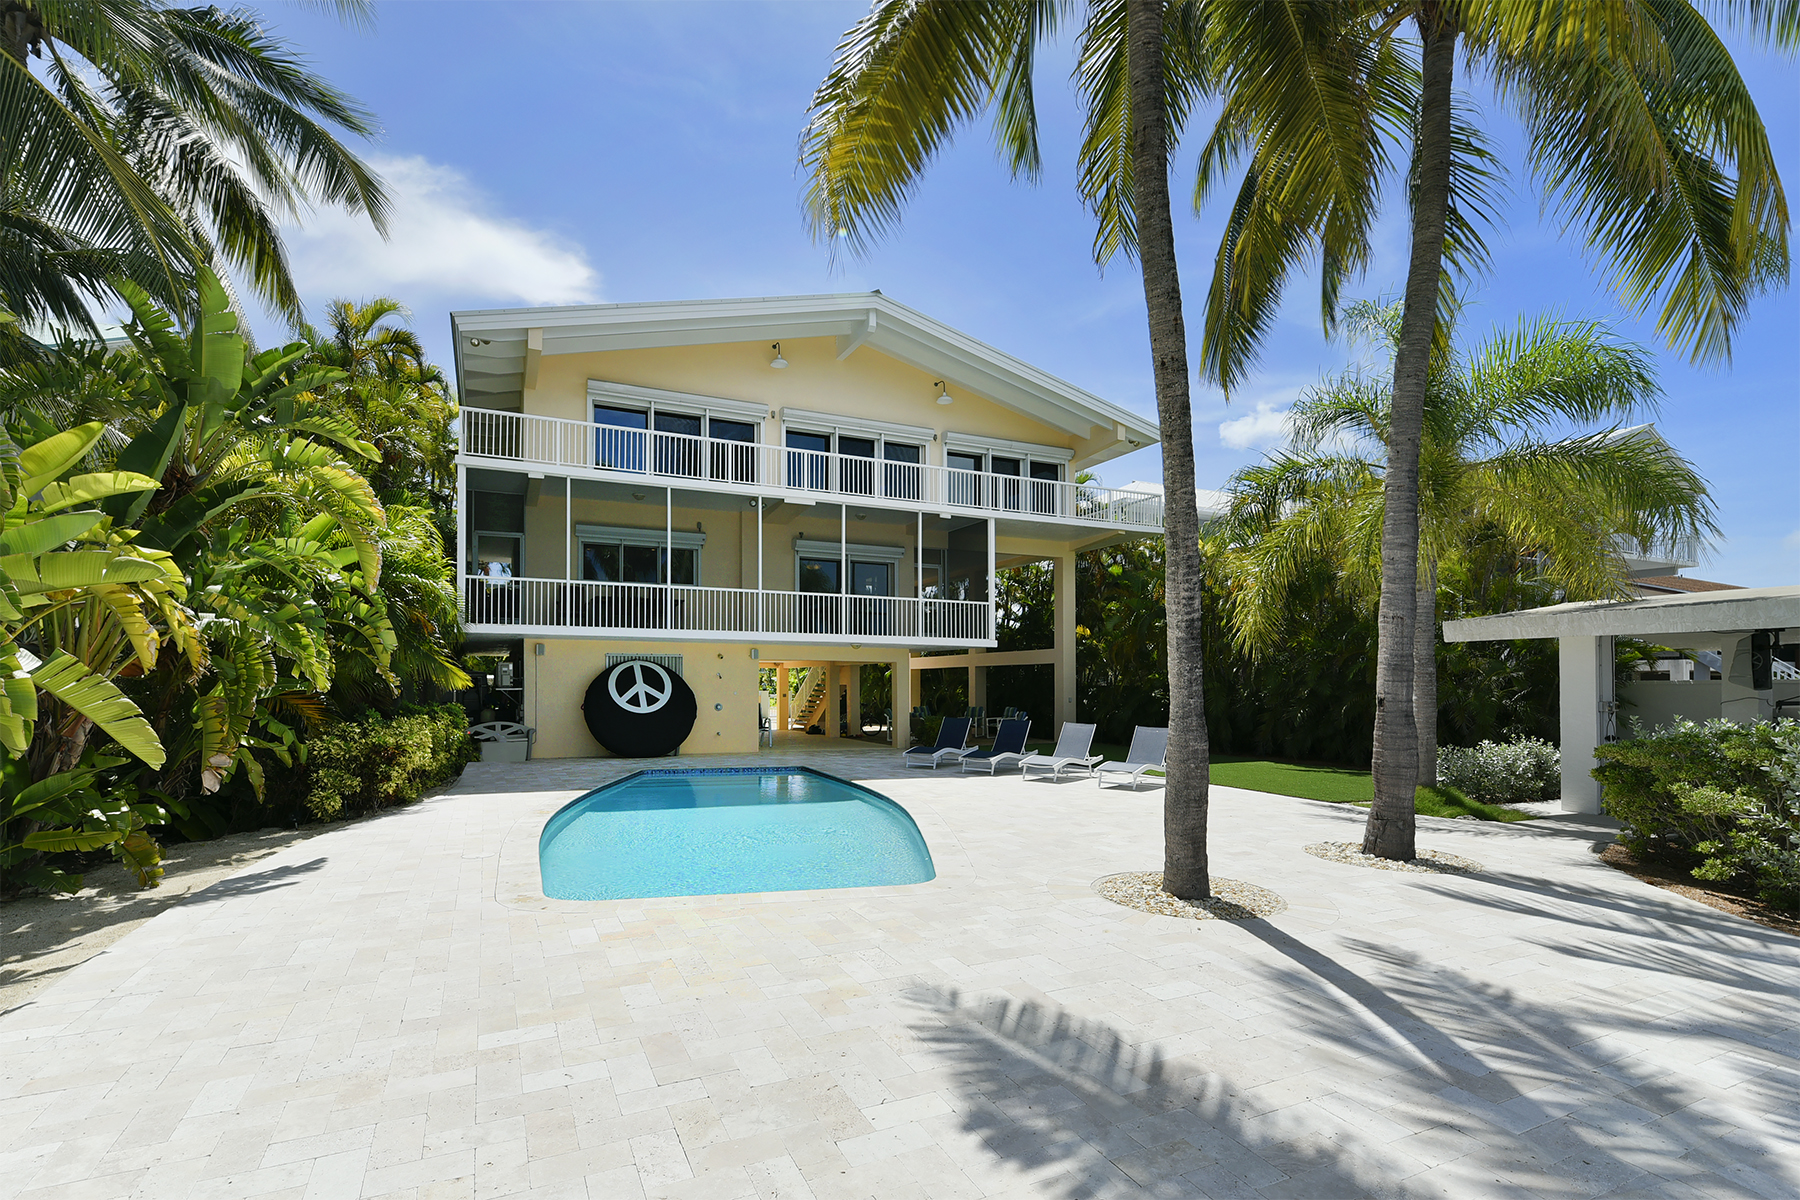 Additional photo for property listing at Fabulous Bayfront Home 400 S Coconut Palm Blvd Islamorada, Florida 33070 États-Unis